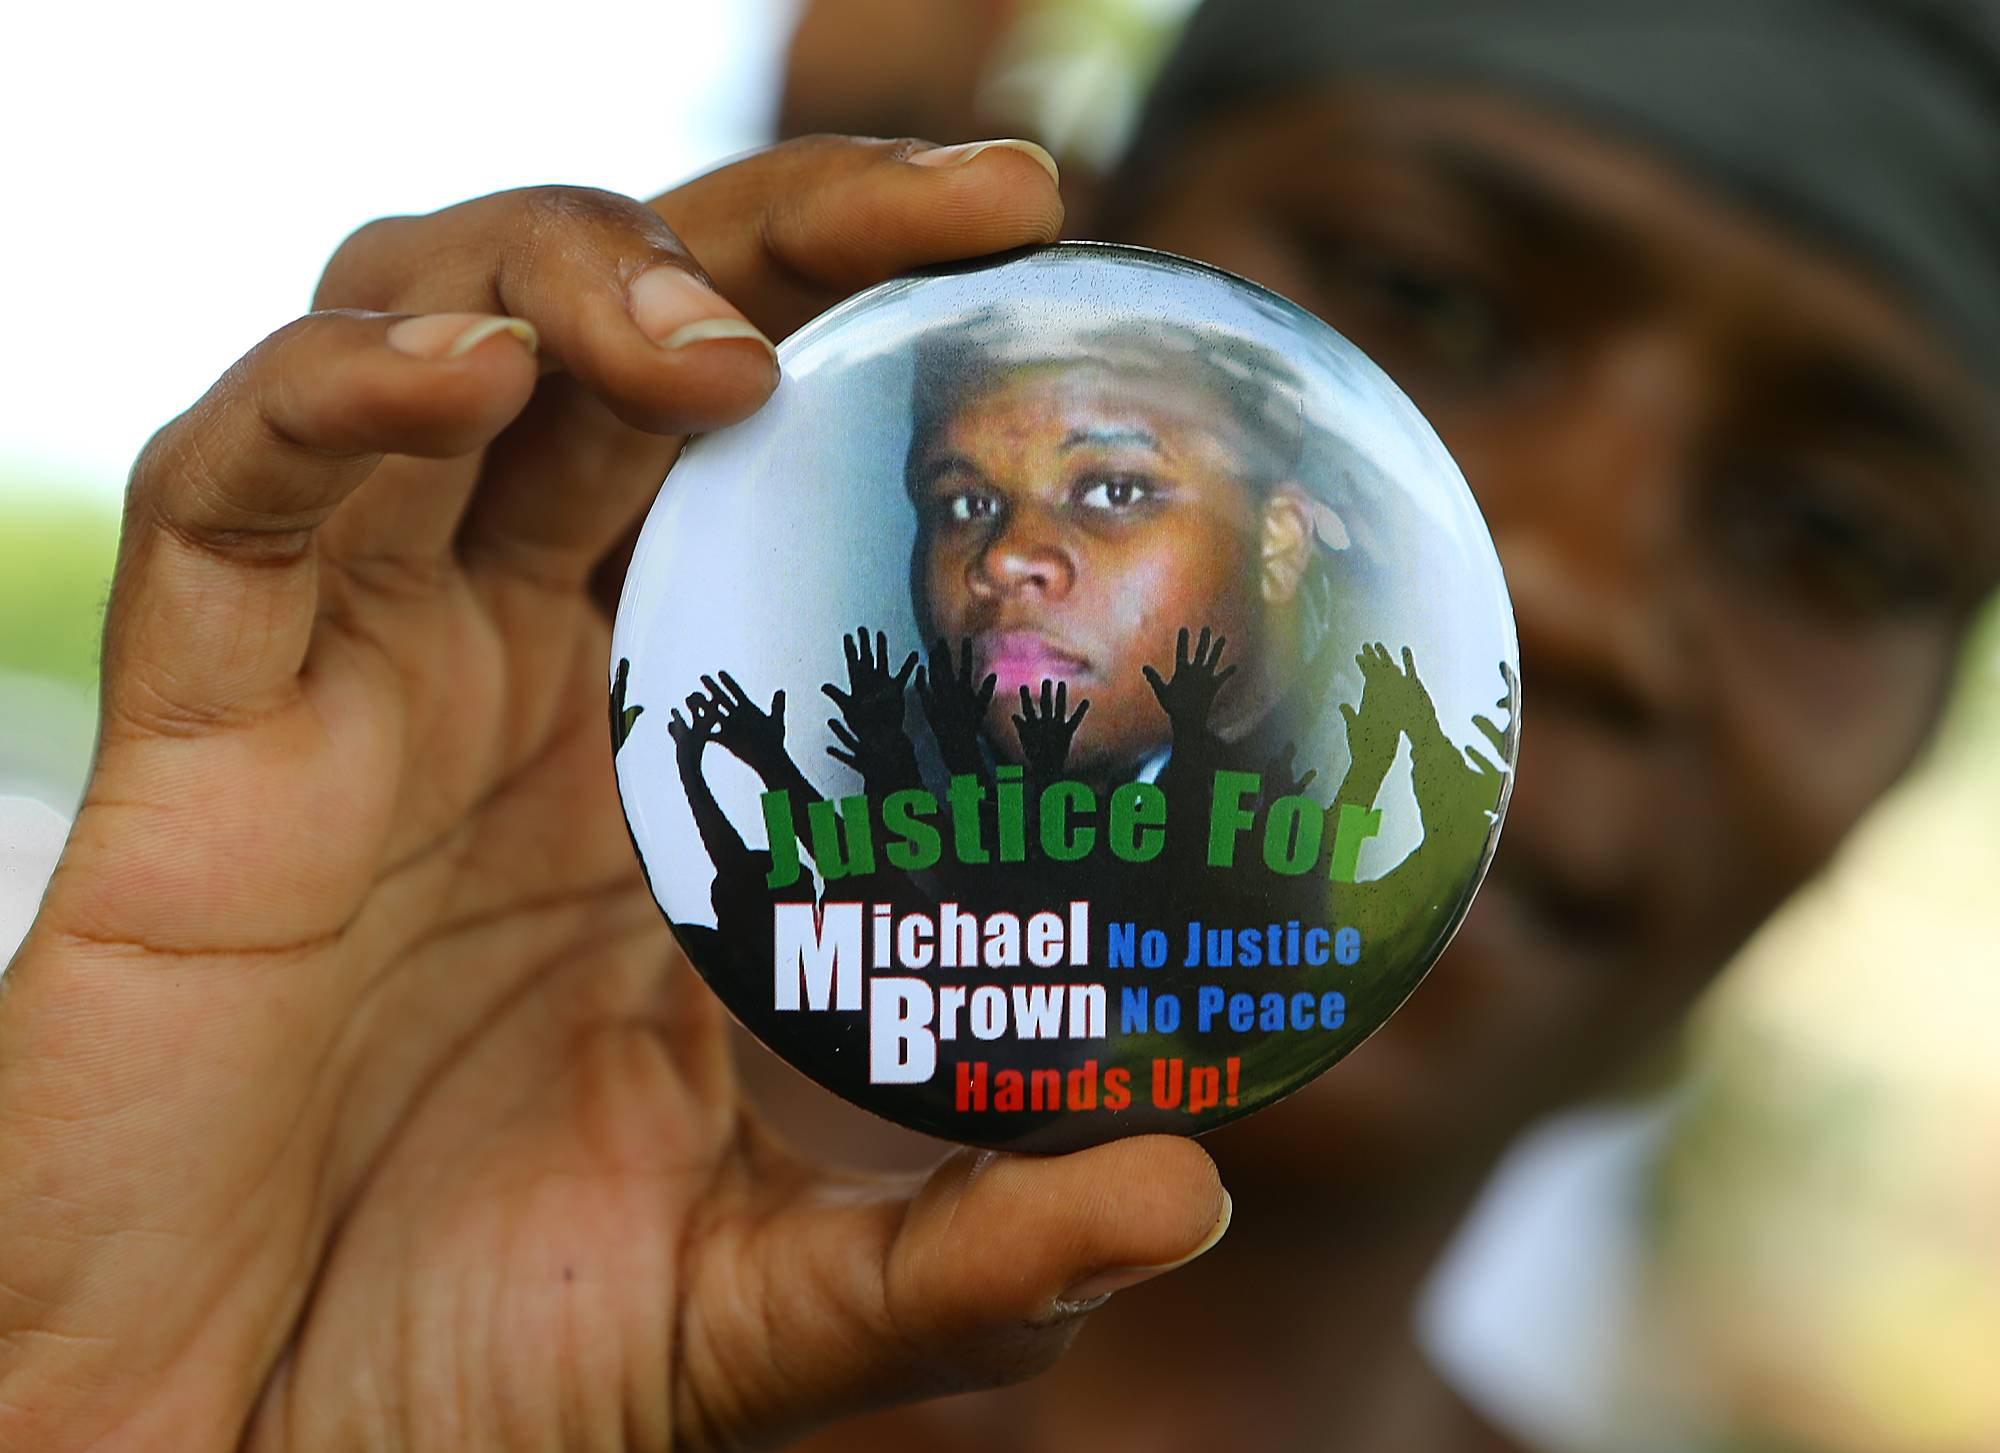 Nikki Jones, of Spanish Lake, Mo., holds a button Thursday in support of Michael Brown while visiting near where he was fatally shot by police in Ferguson, Mo.